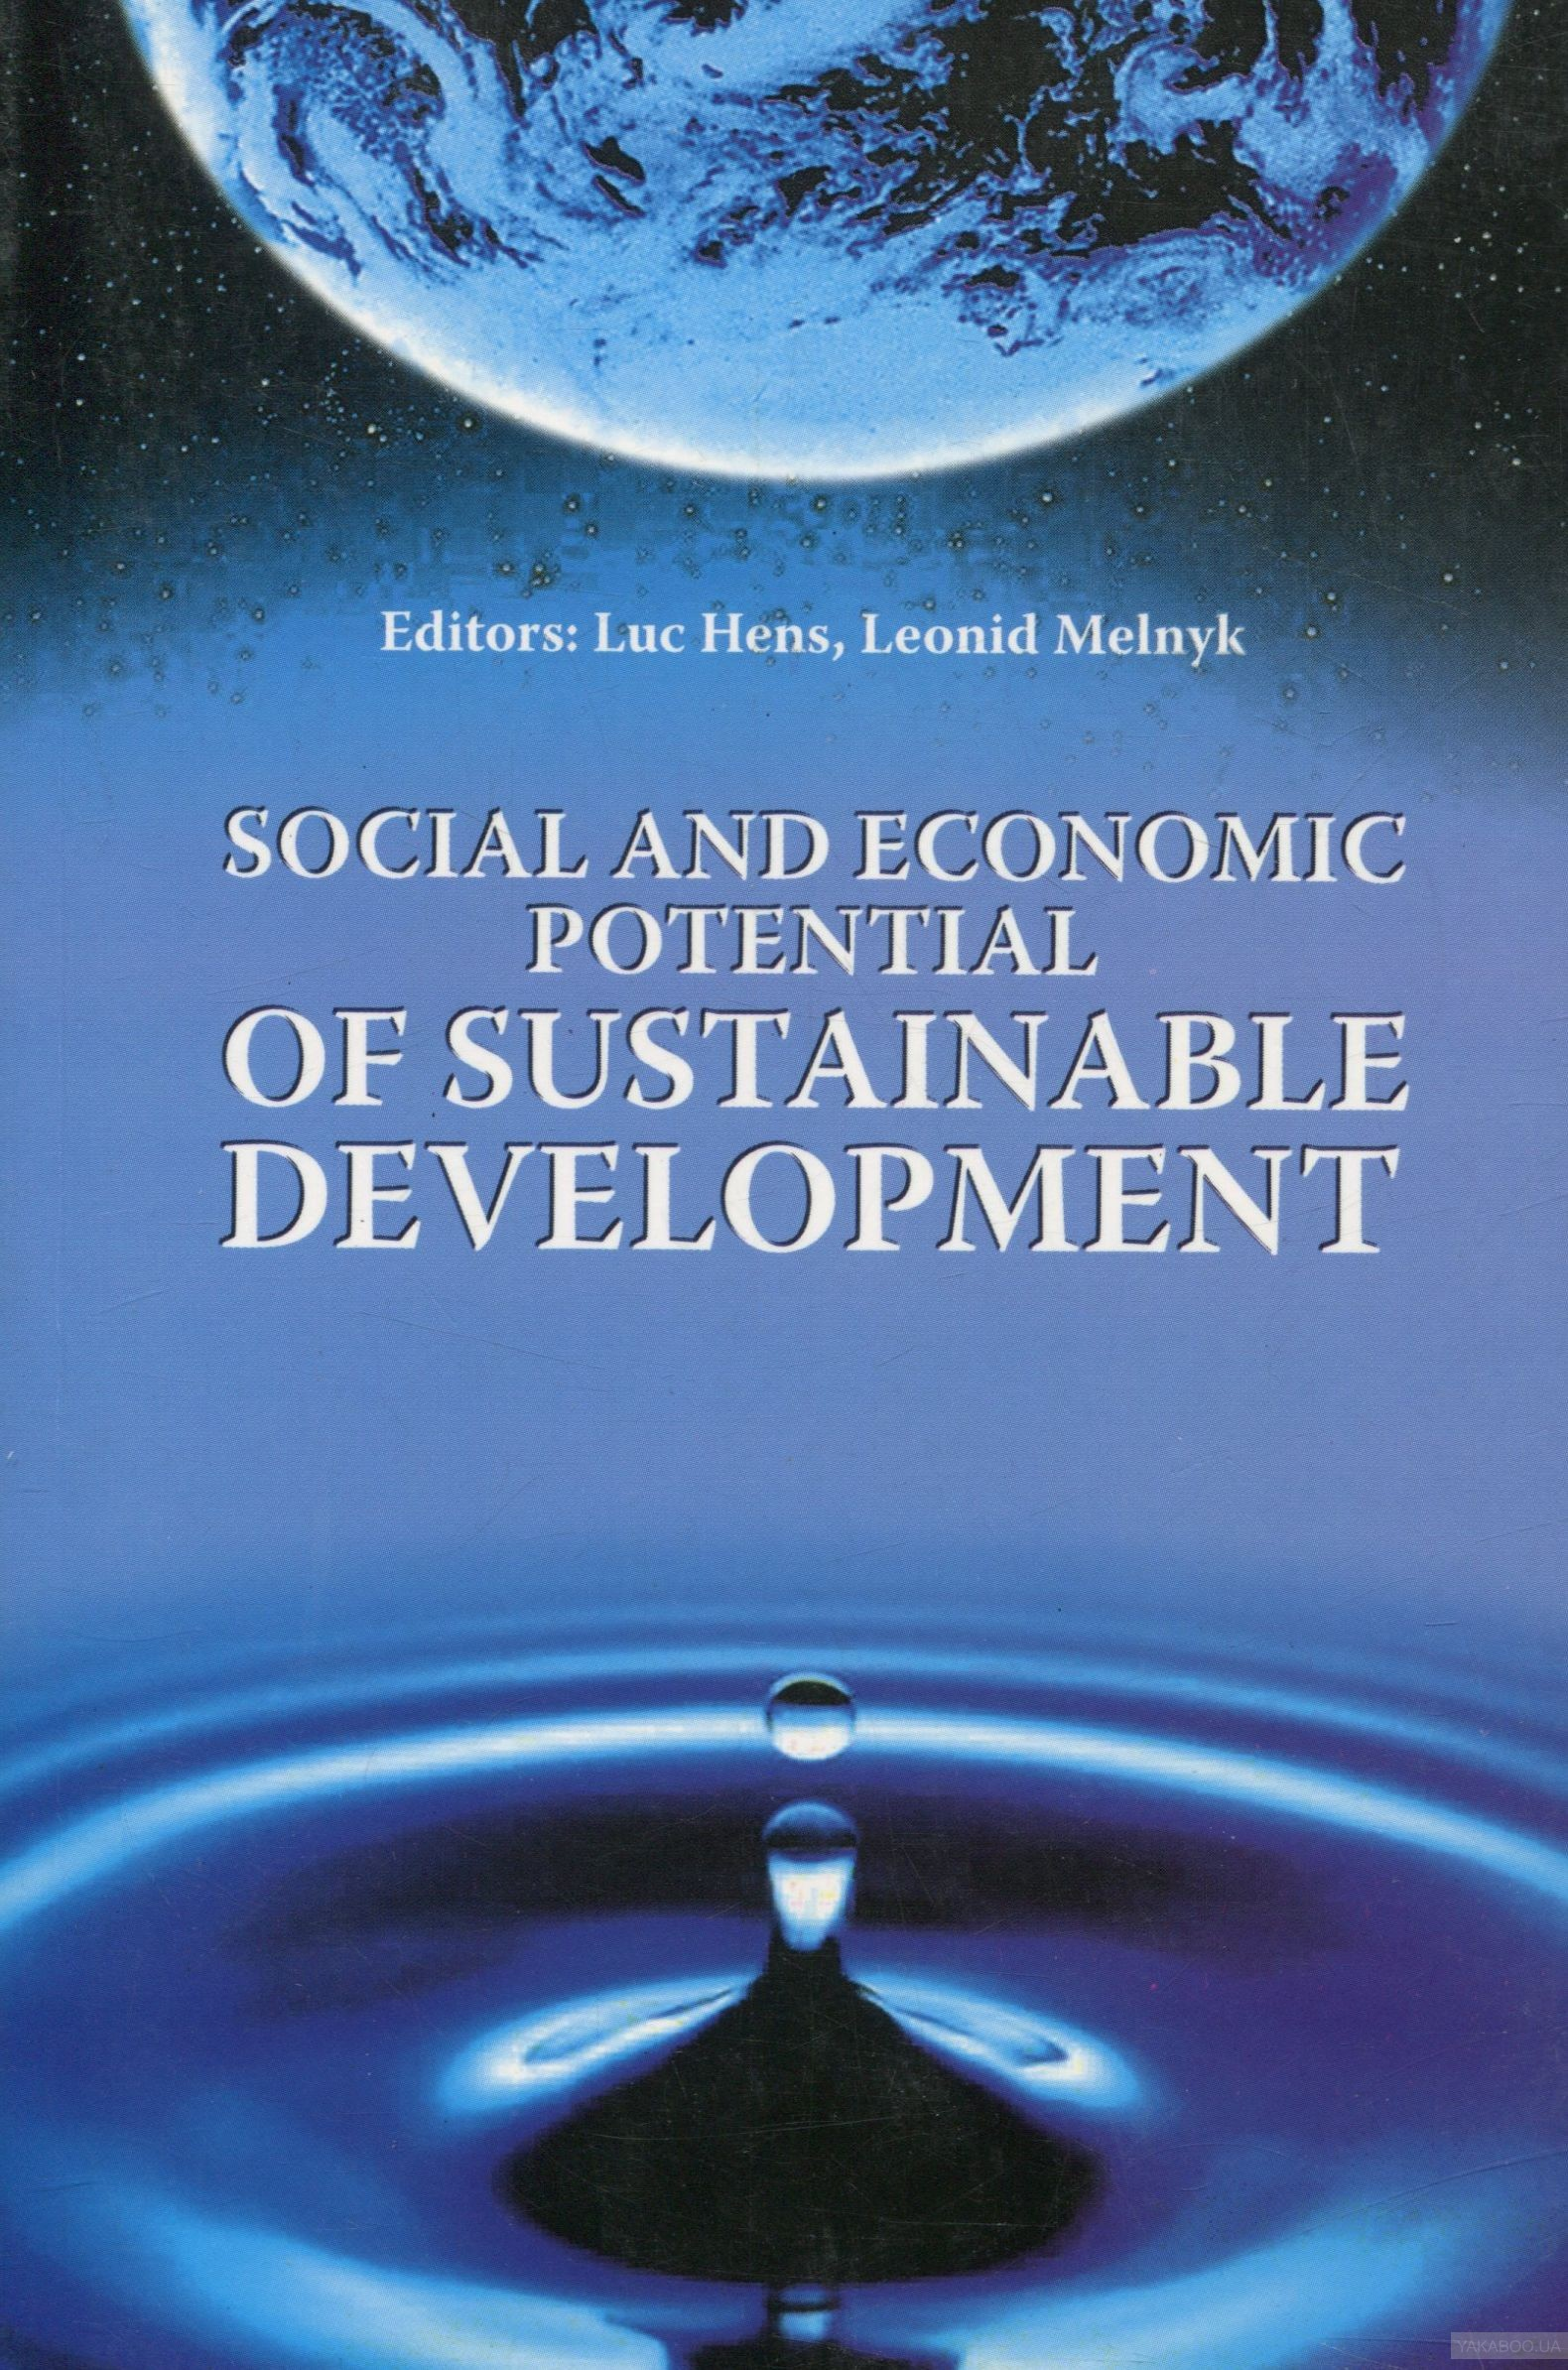 Social and economic potential of sustainable development